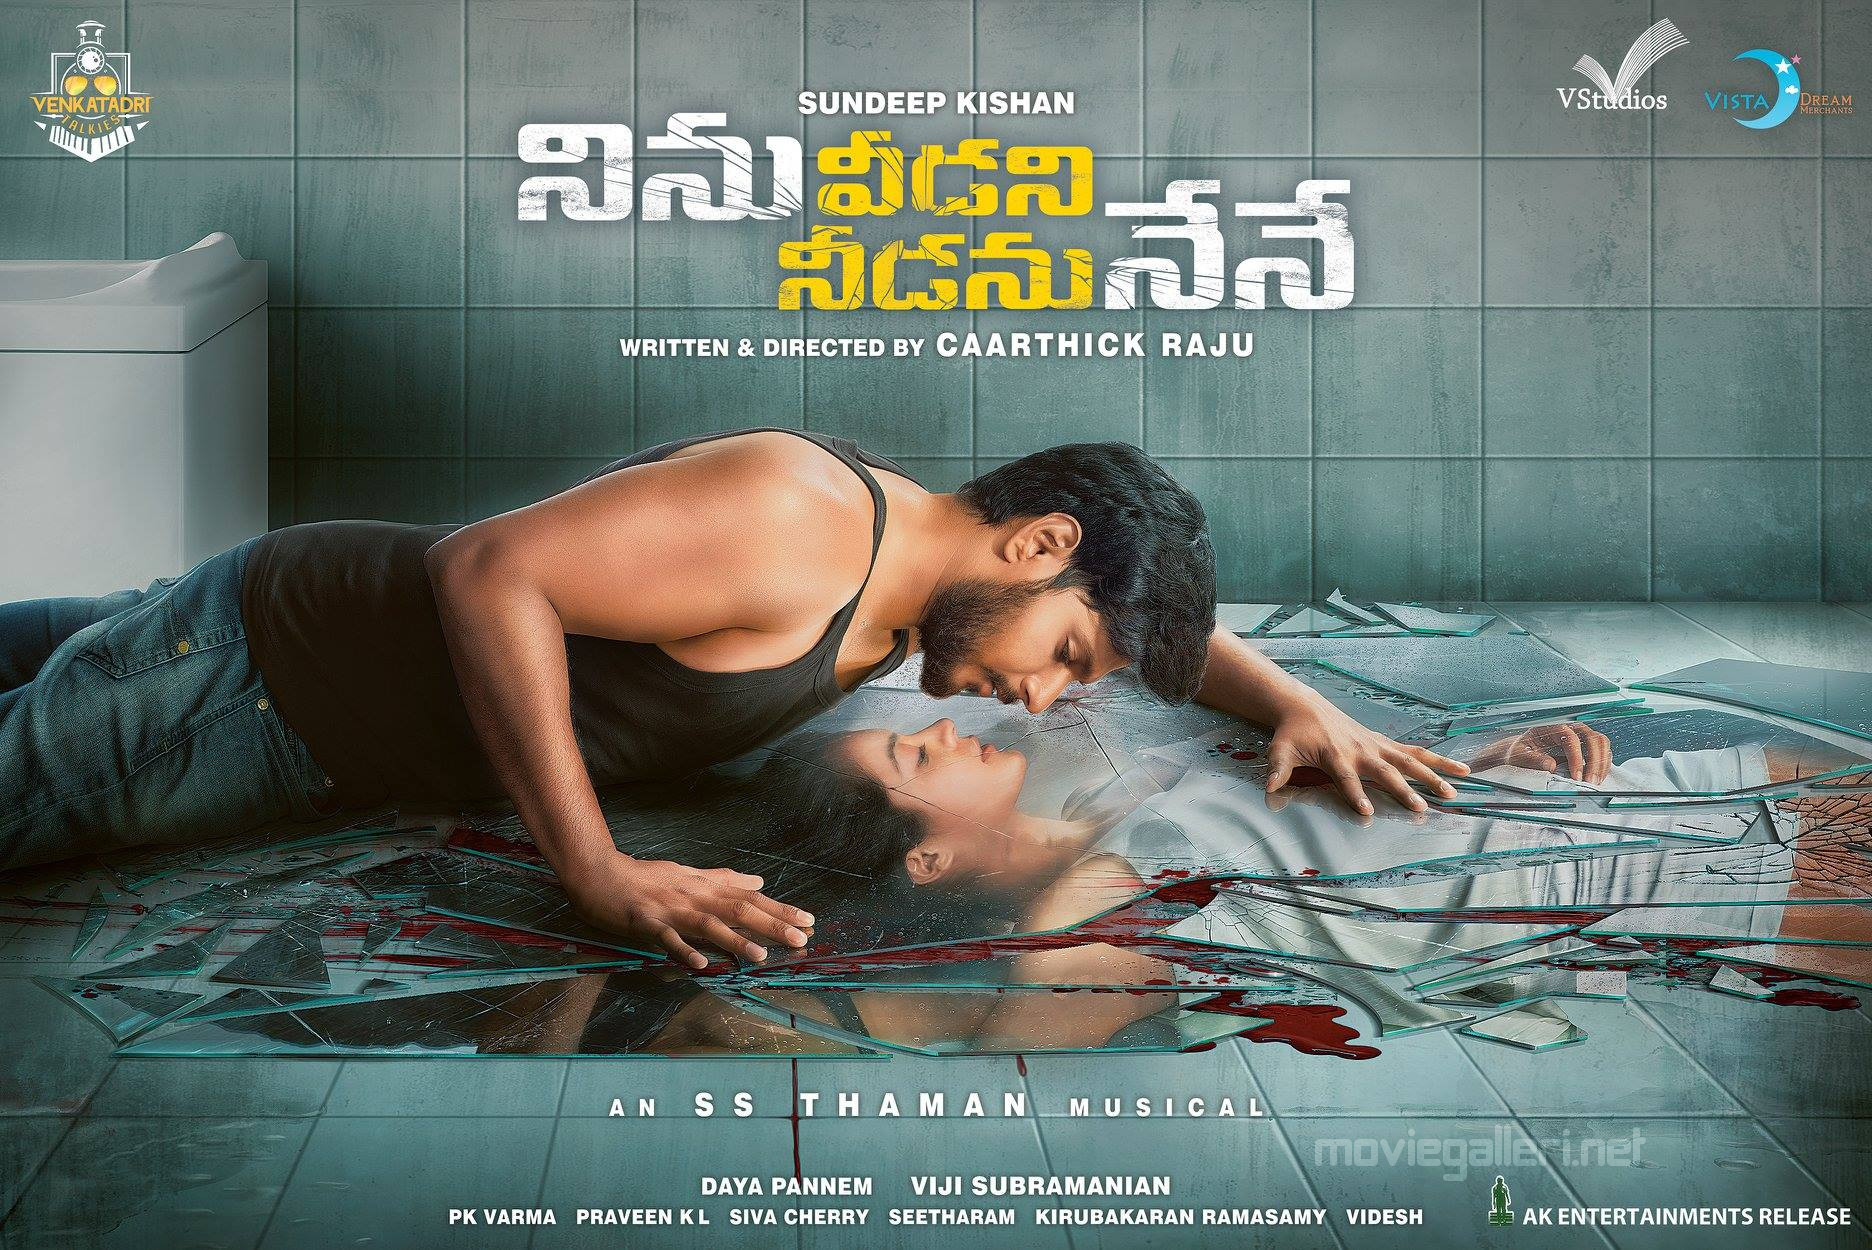 Sundeep Kishan, Anya Singh Ninu Veedani Needanu Nene First Look Poster HD